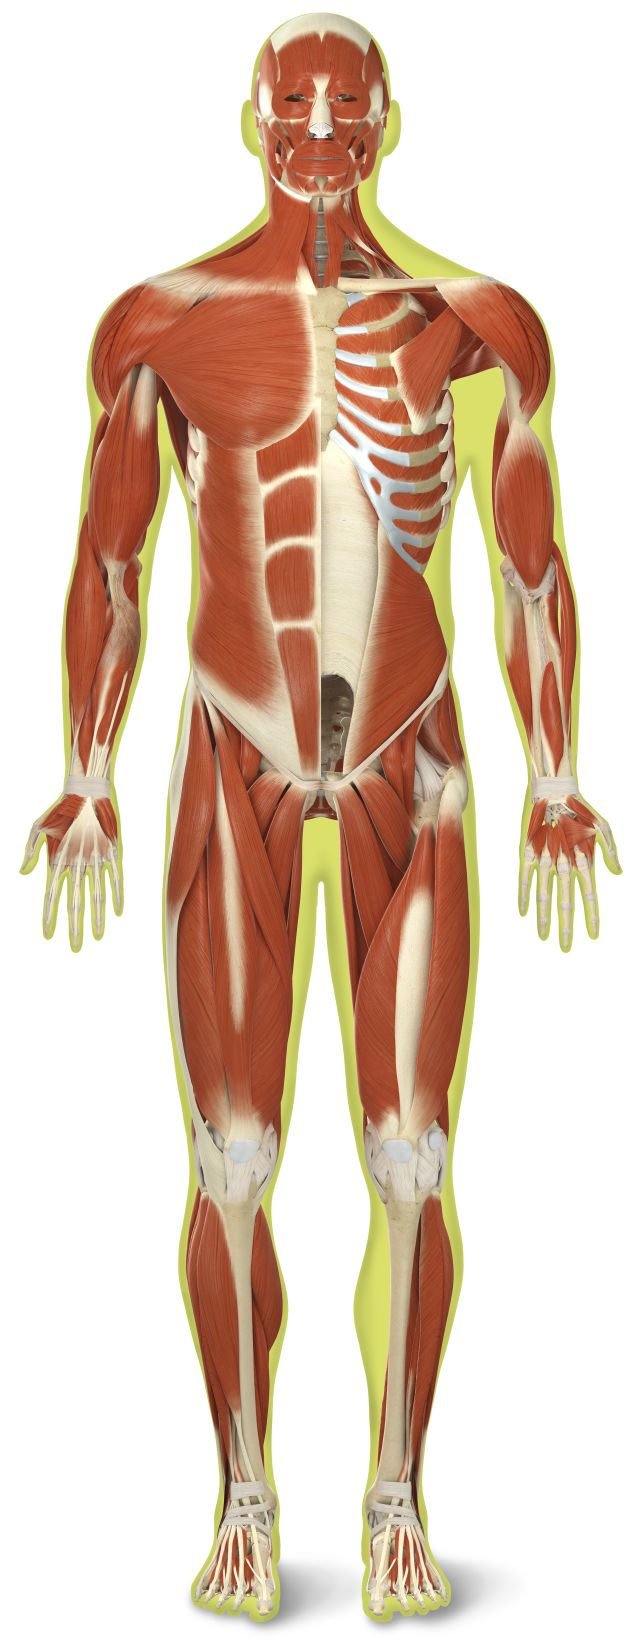 Human Body Quiz Human Body Quiz For Kids Dk Find Out